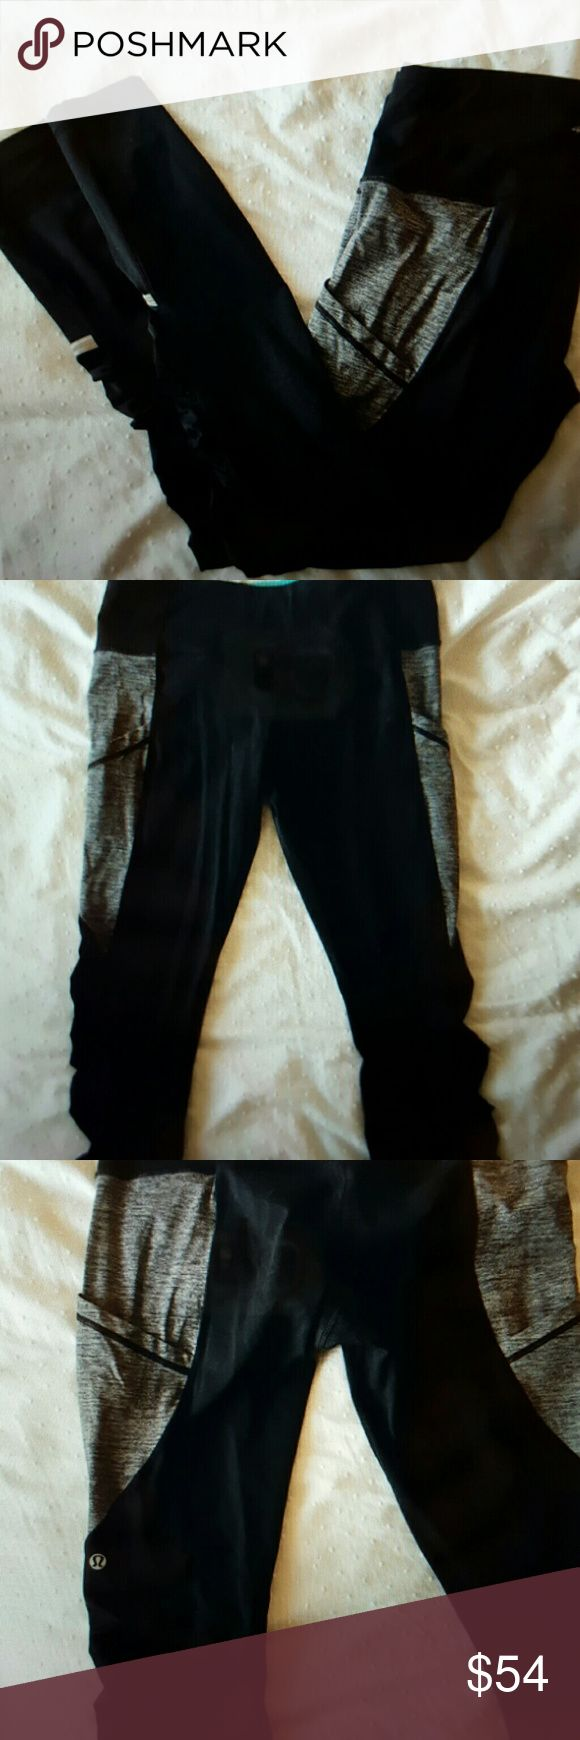 Lululemon running tights Only worn a couple of times.  Like new.  No signs of wear. High waist with zipper/pocket at back.  Full length. Two pockets on outer thighs on grey panels. Reflective detailing at mid calf. Made of lightweight luxtreme which is moisture wicking, breathable and has good compression.  Tag removed. Lululemon sz 10 is equivalent to a 12 in standard US sizing. lululemon athletica Pants Leggings